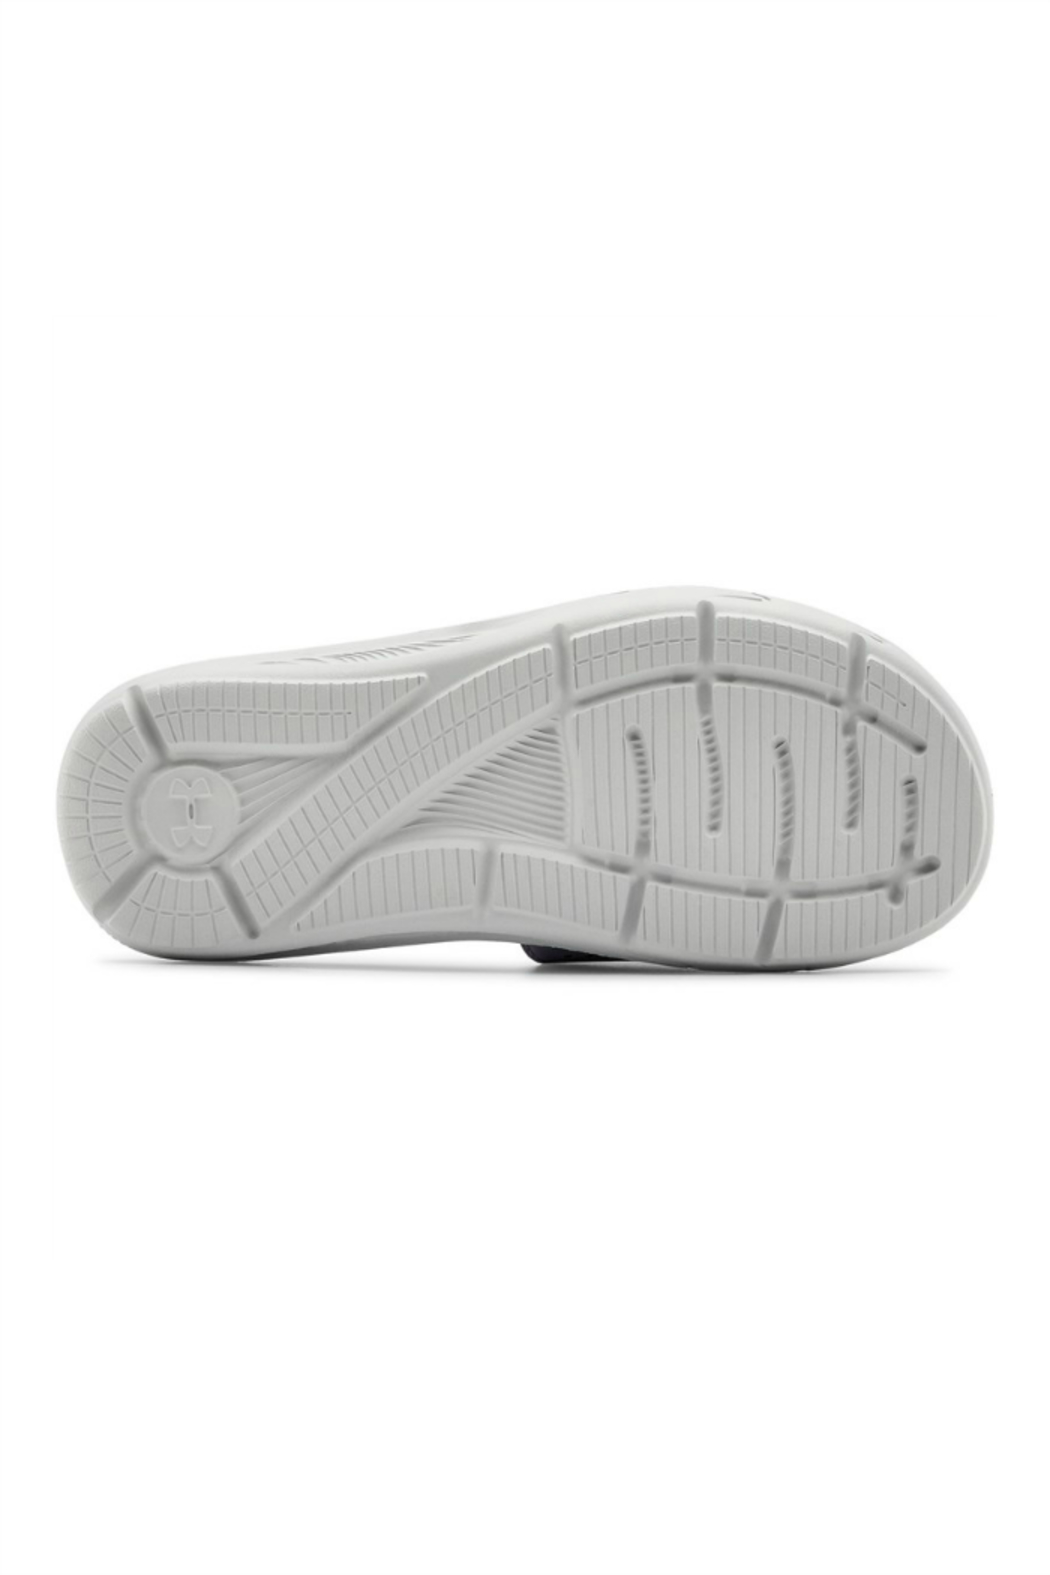 Under Armour Girls Ignite Swerve Slide in Halo Gray - Front Full Image